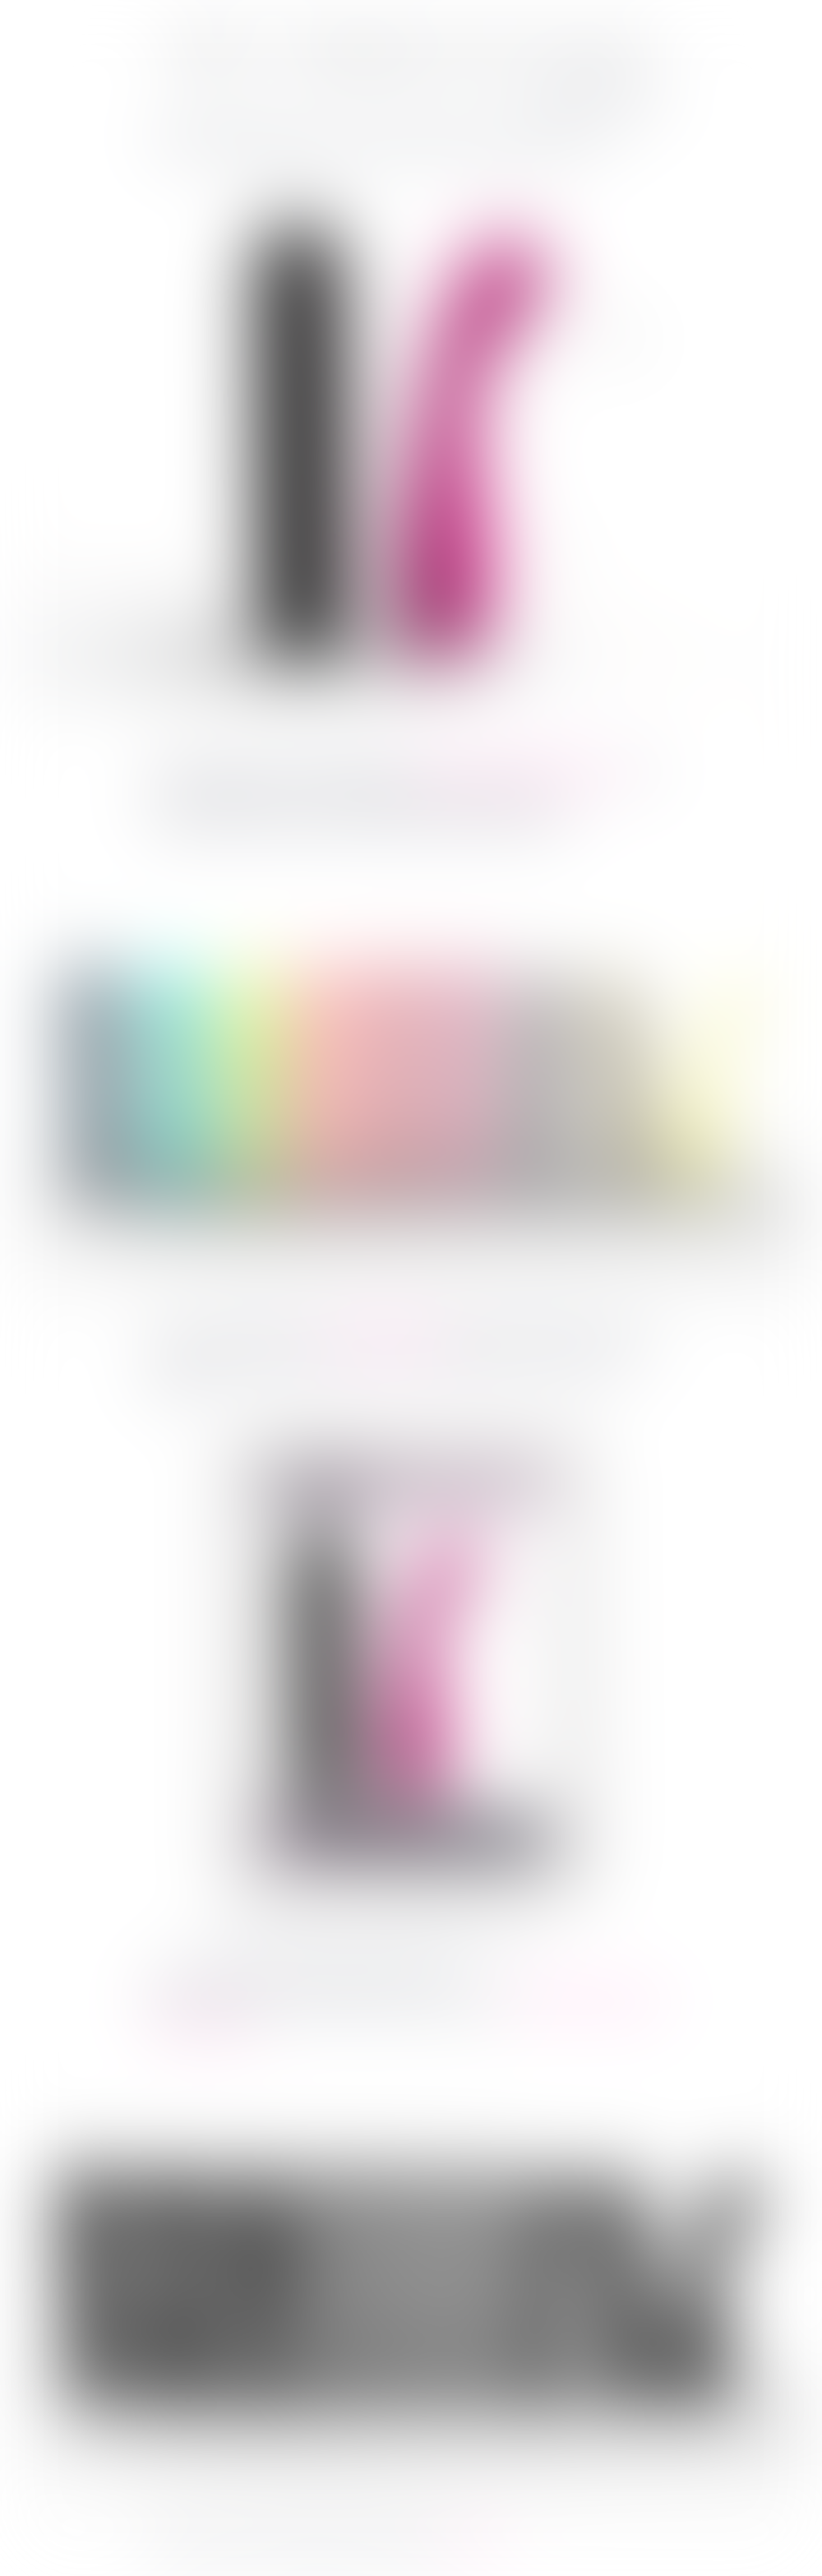 dilDIY – coDesigned sex toys  concept — cunicode  blur .png